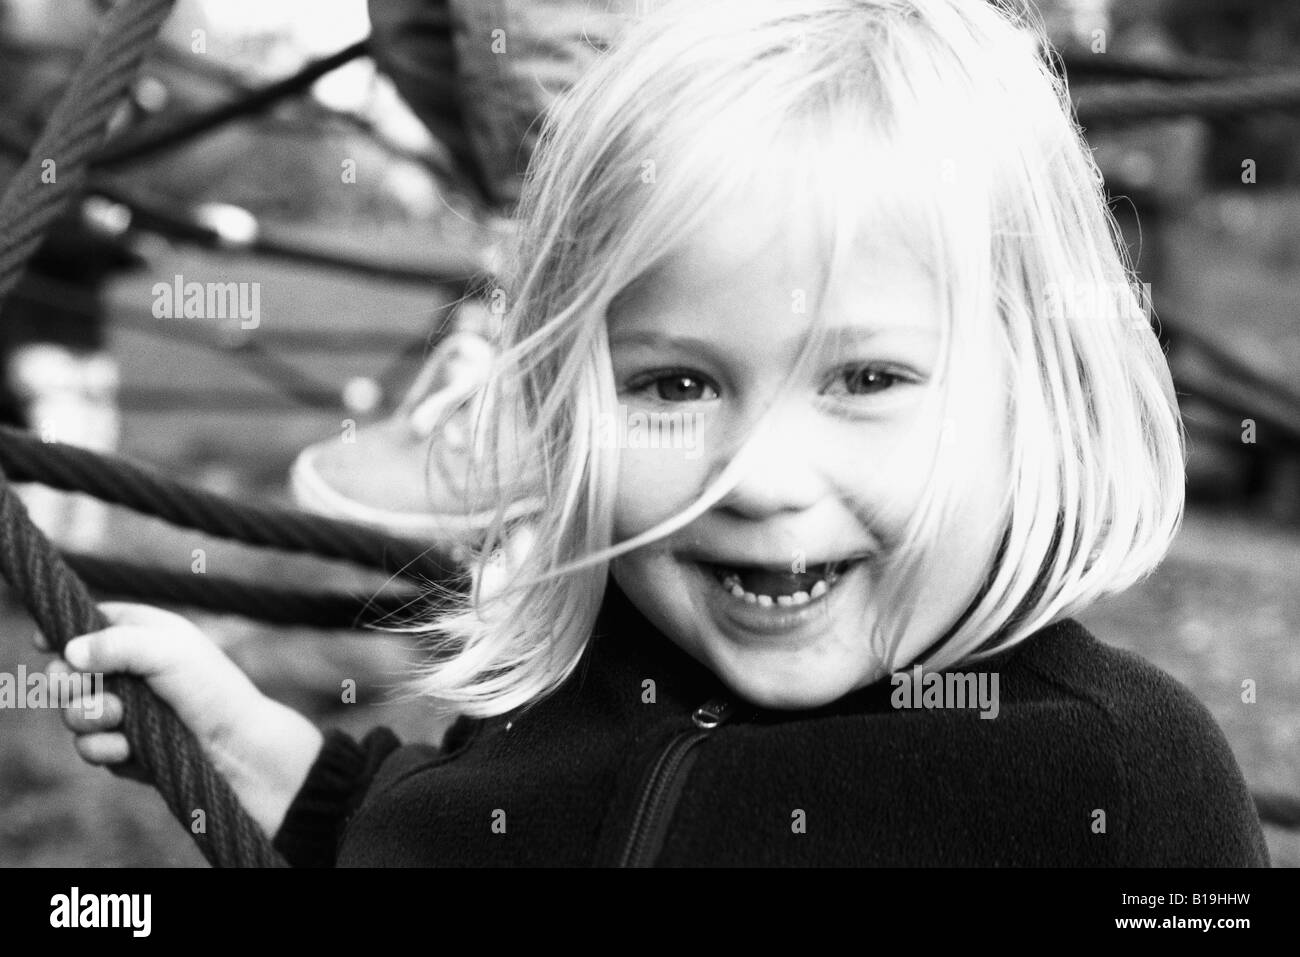 Little girl, smiling at camera, portrait, black and white - Stock Image